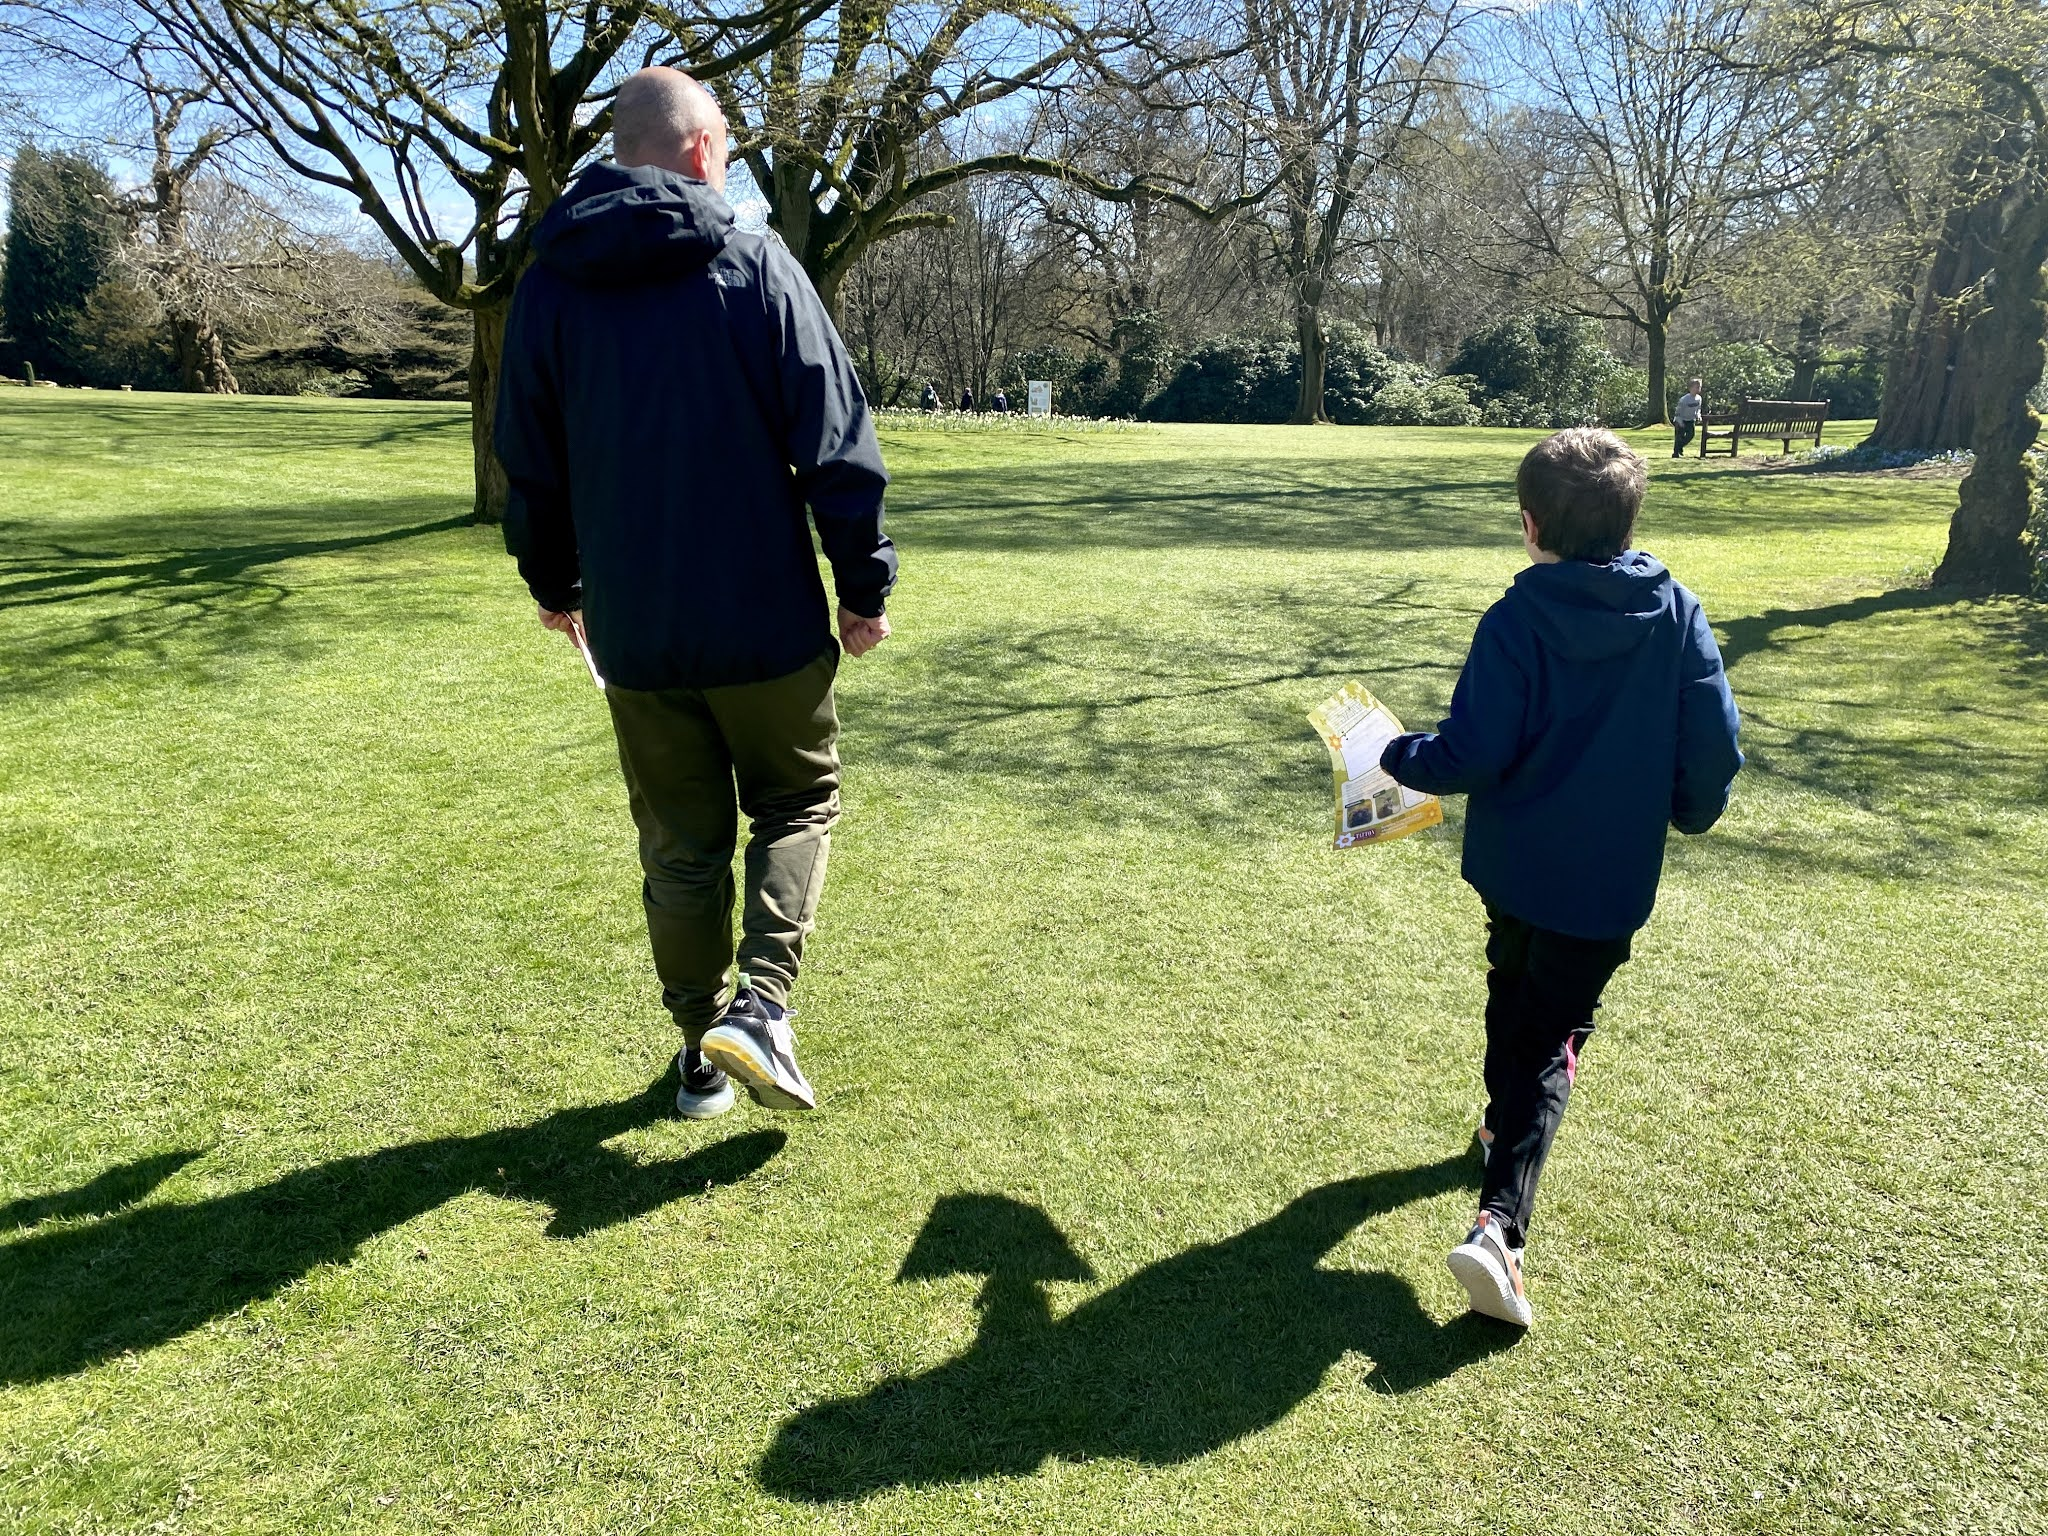 Dad and son walking along the grass